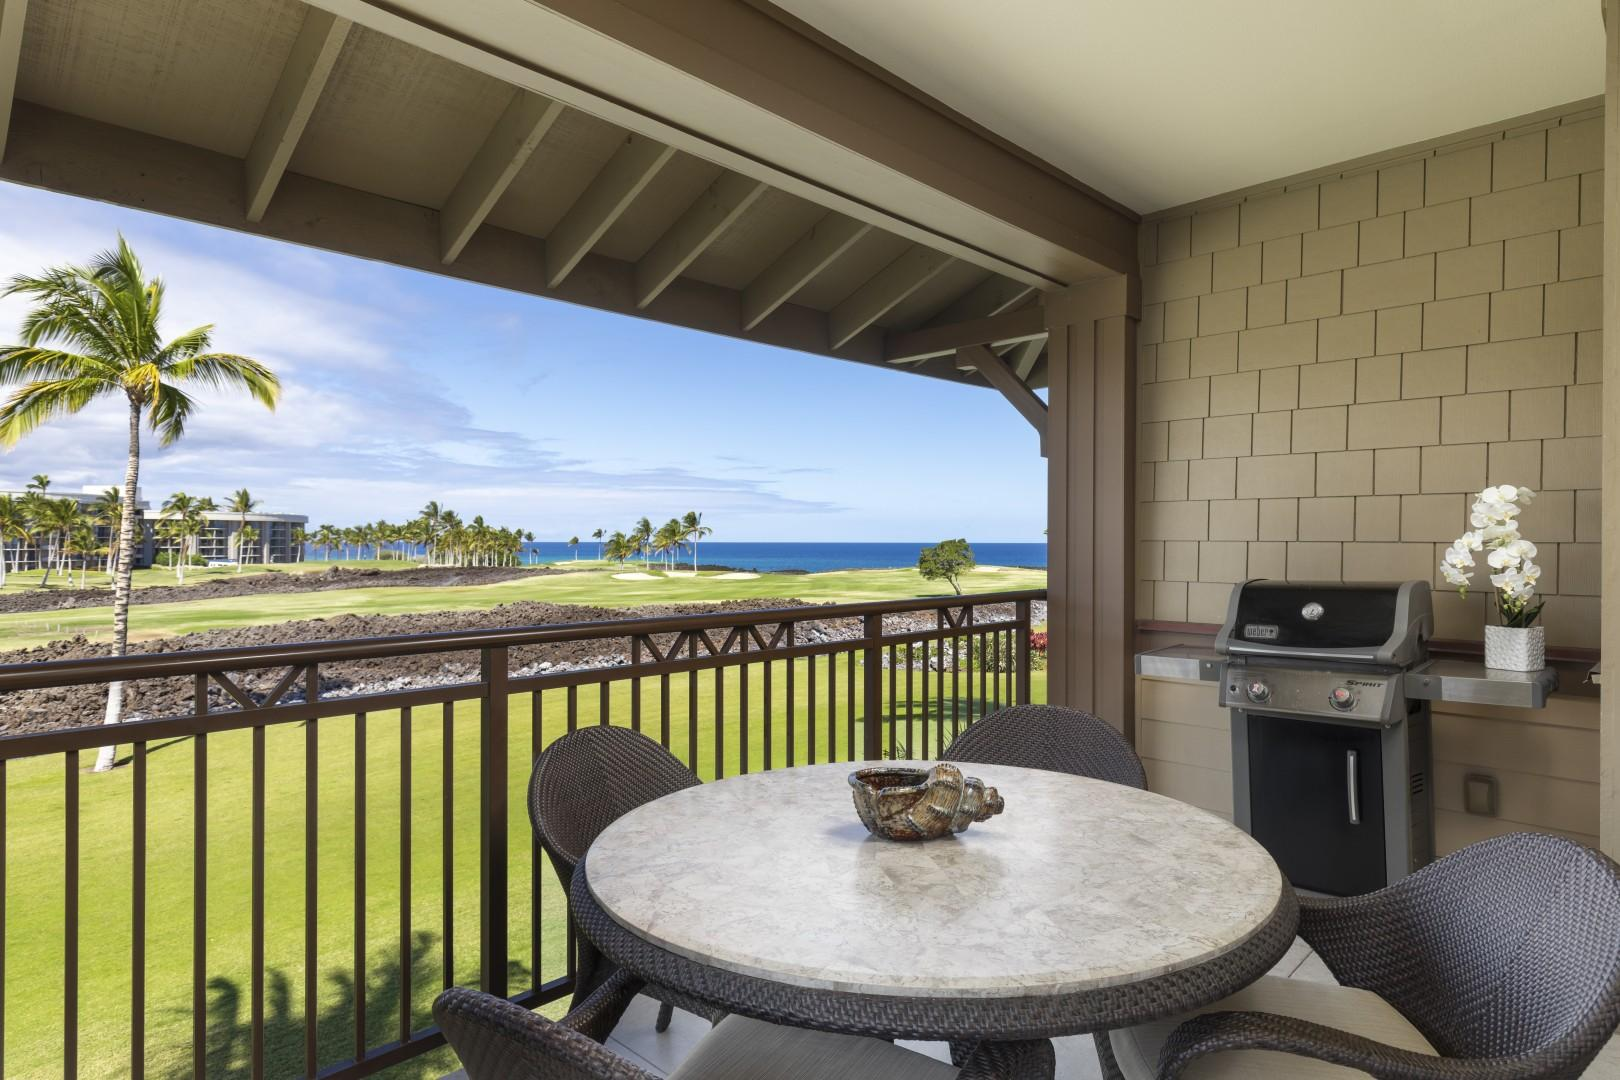 Alfresco dining on your private lanai is completed with your own BBQ to use.